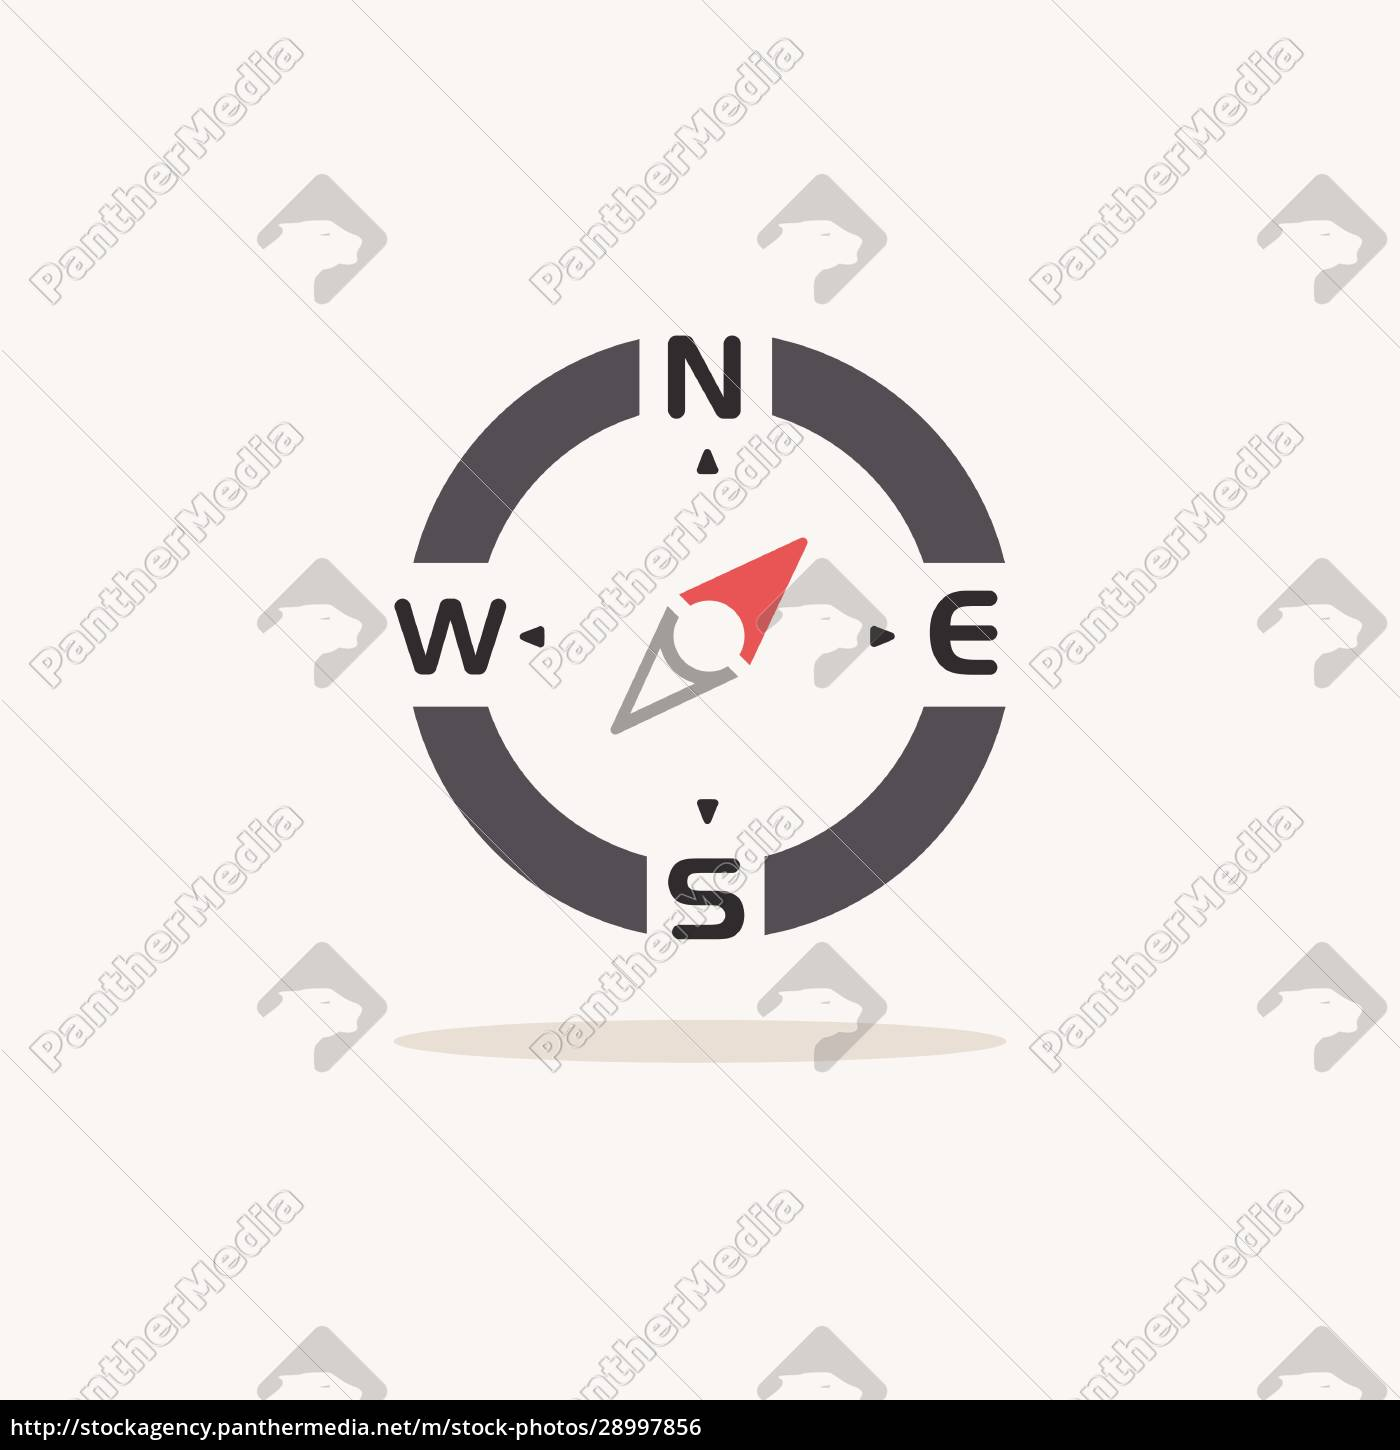 compass., north, east, direction., color, icon - 28997856